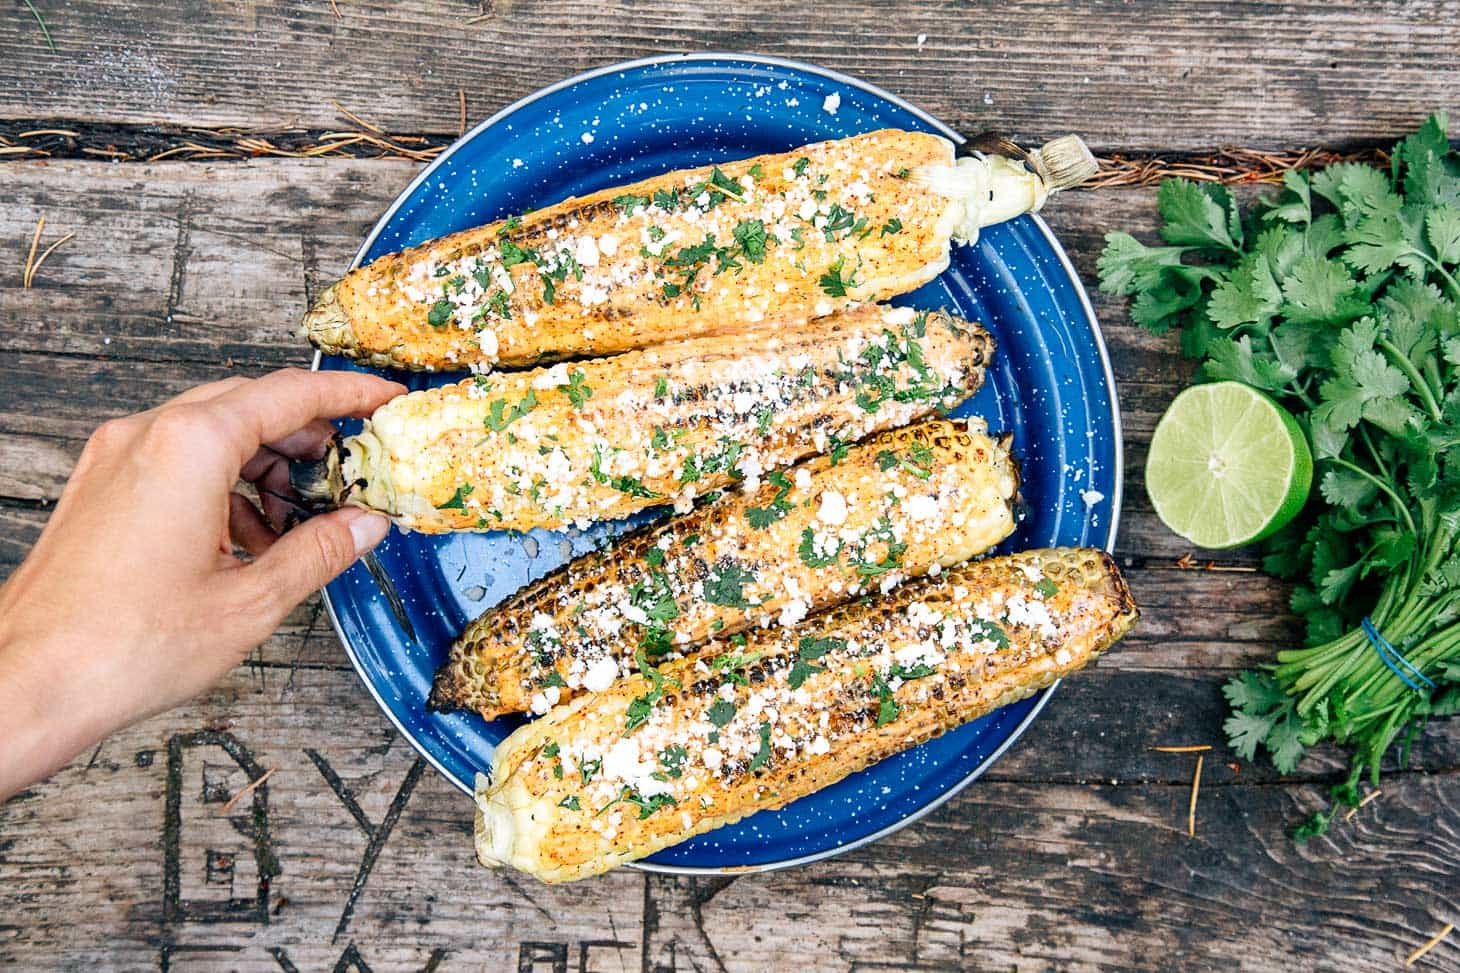 Four Elotes - grilled Mexican street corn - on a blue camping plate. A hand is reaching in to pick one up.